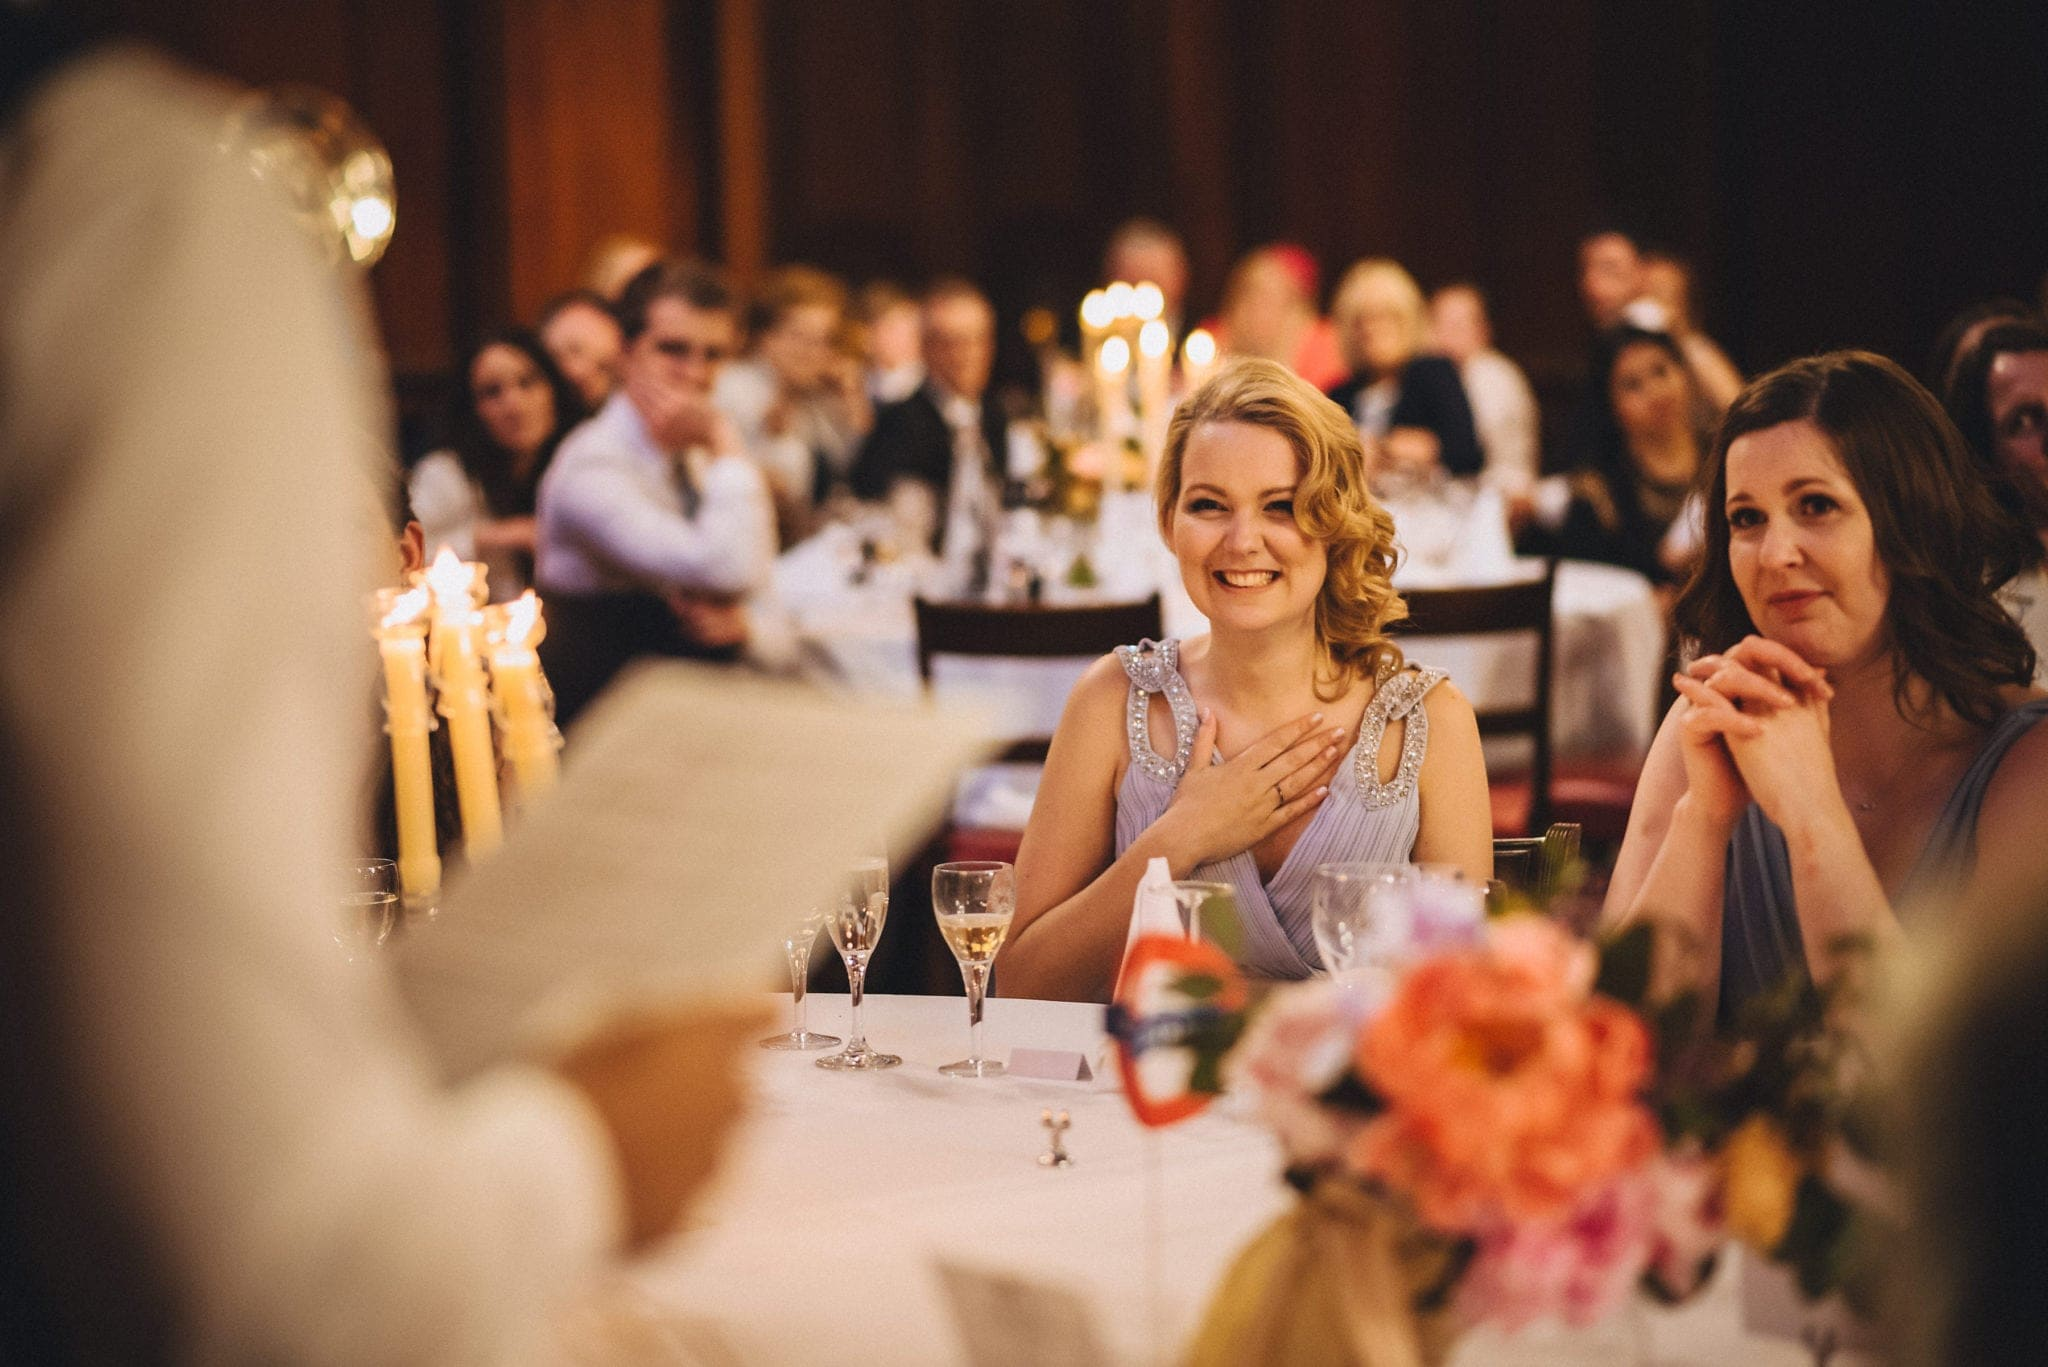 Bridesmaid puts hand on heart during speeches